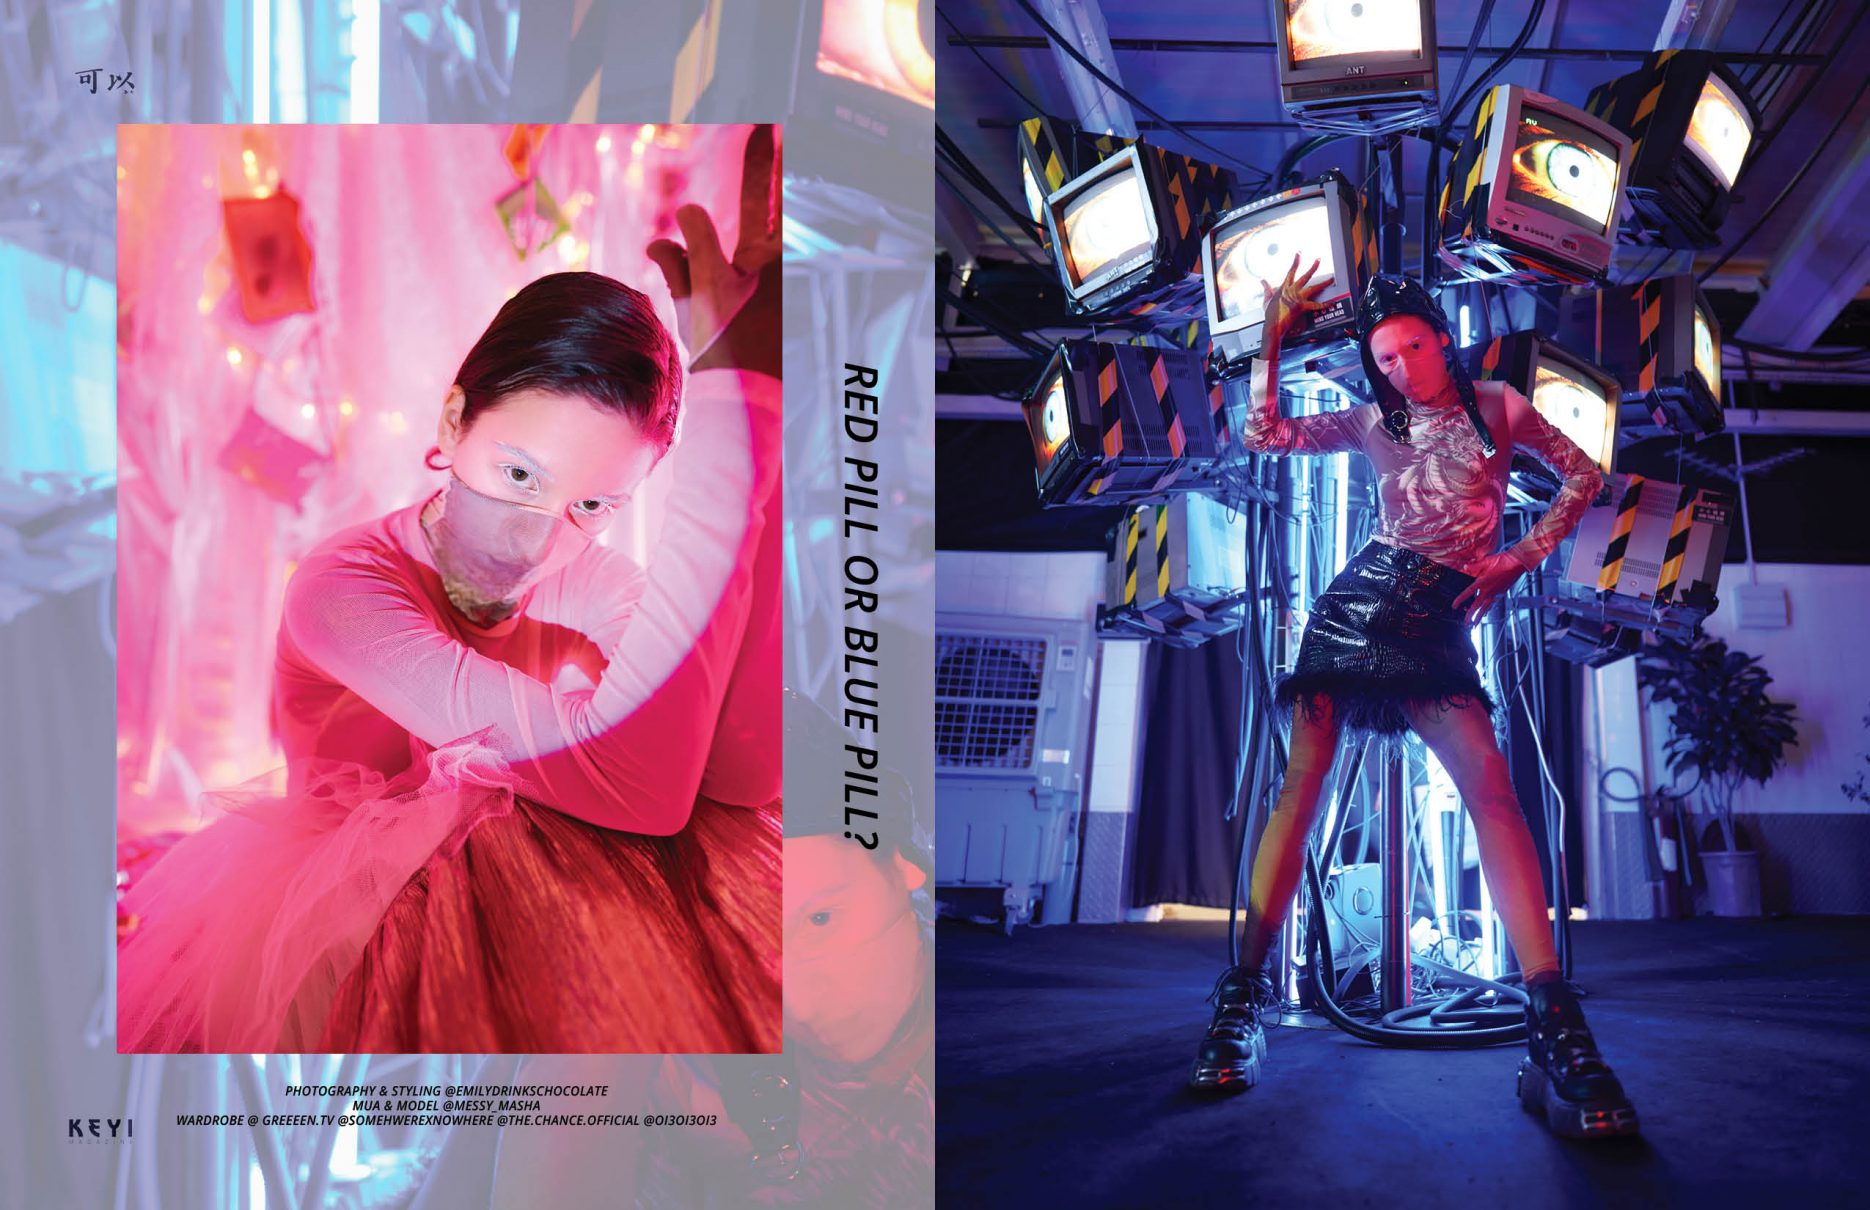 Red pill or Blue pill? by Emily with Masha from STAGE Management for KEYI Magazine Art / Fashion / Music Magazine